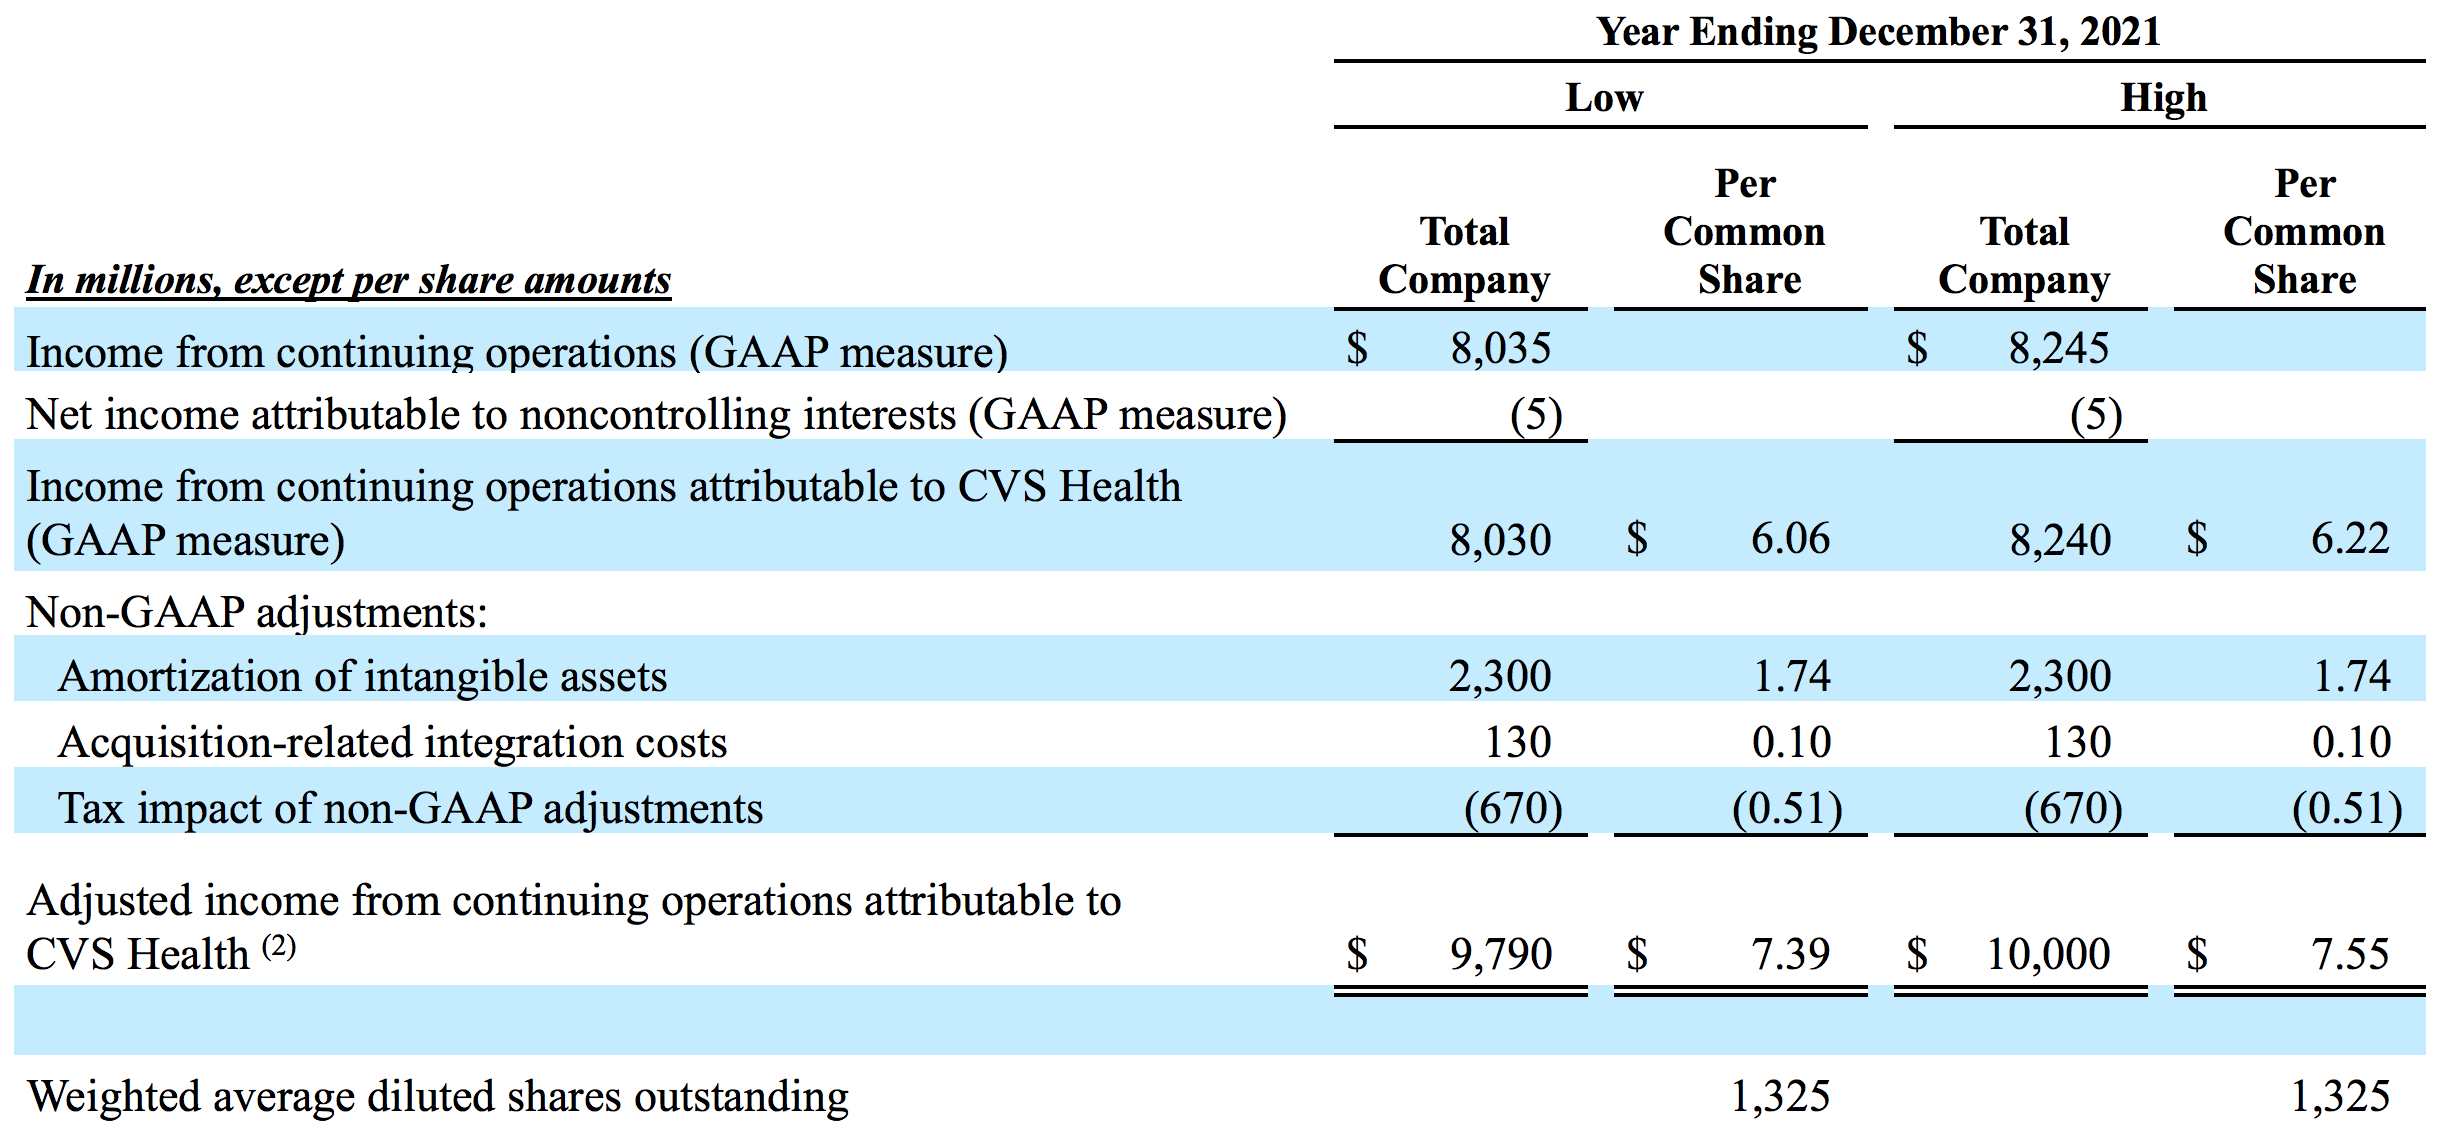 Table: Adjusted Earnings Per Share Guidance (Unaudited)